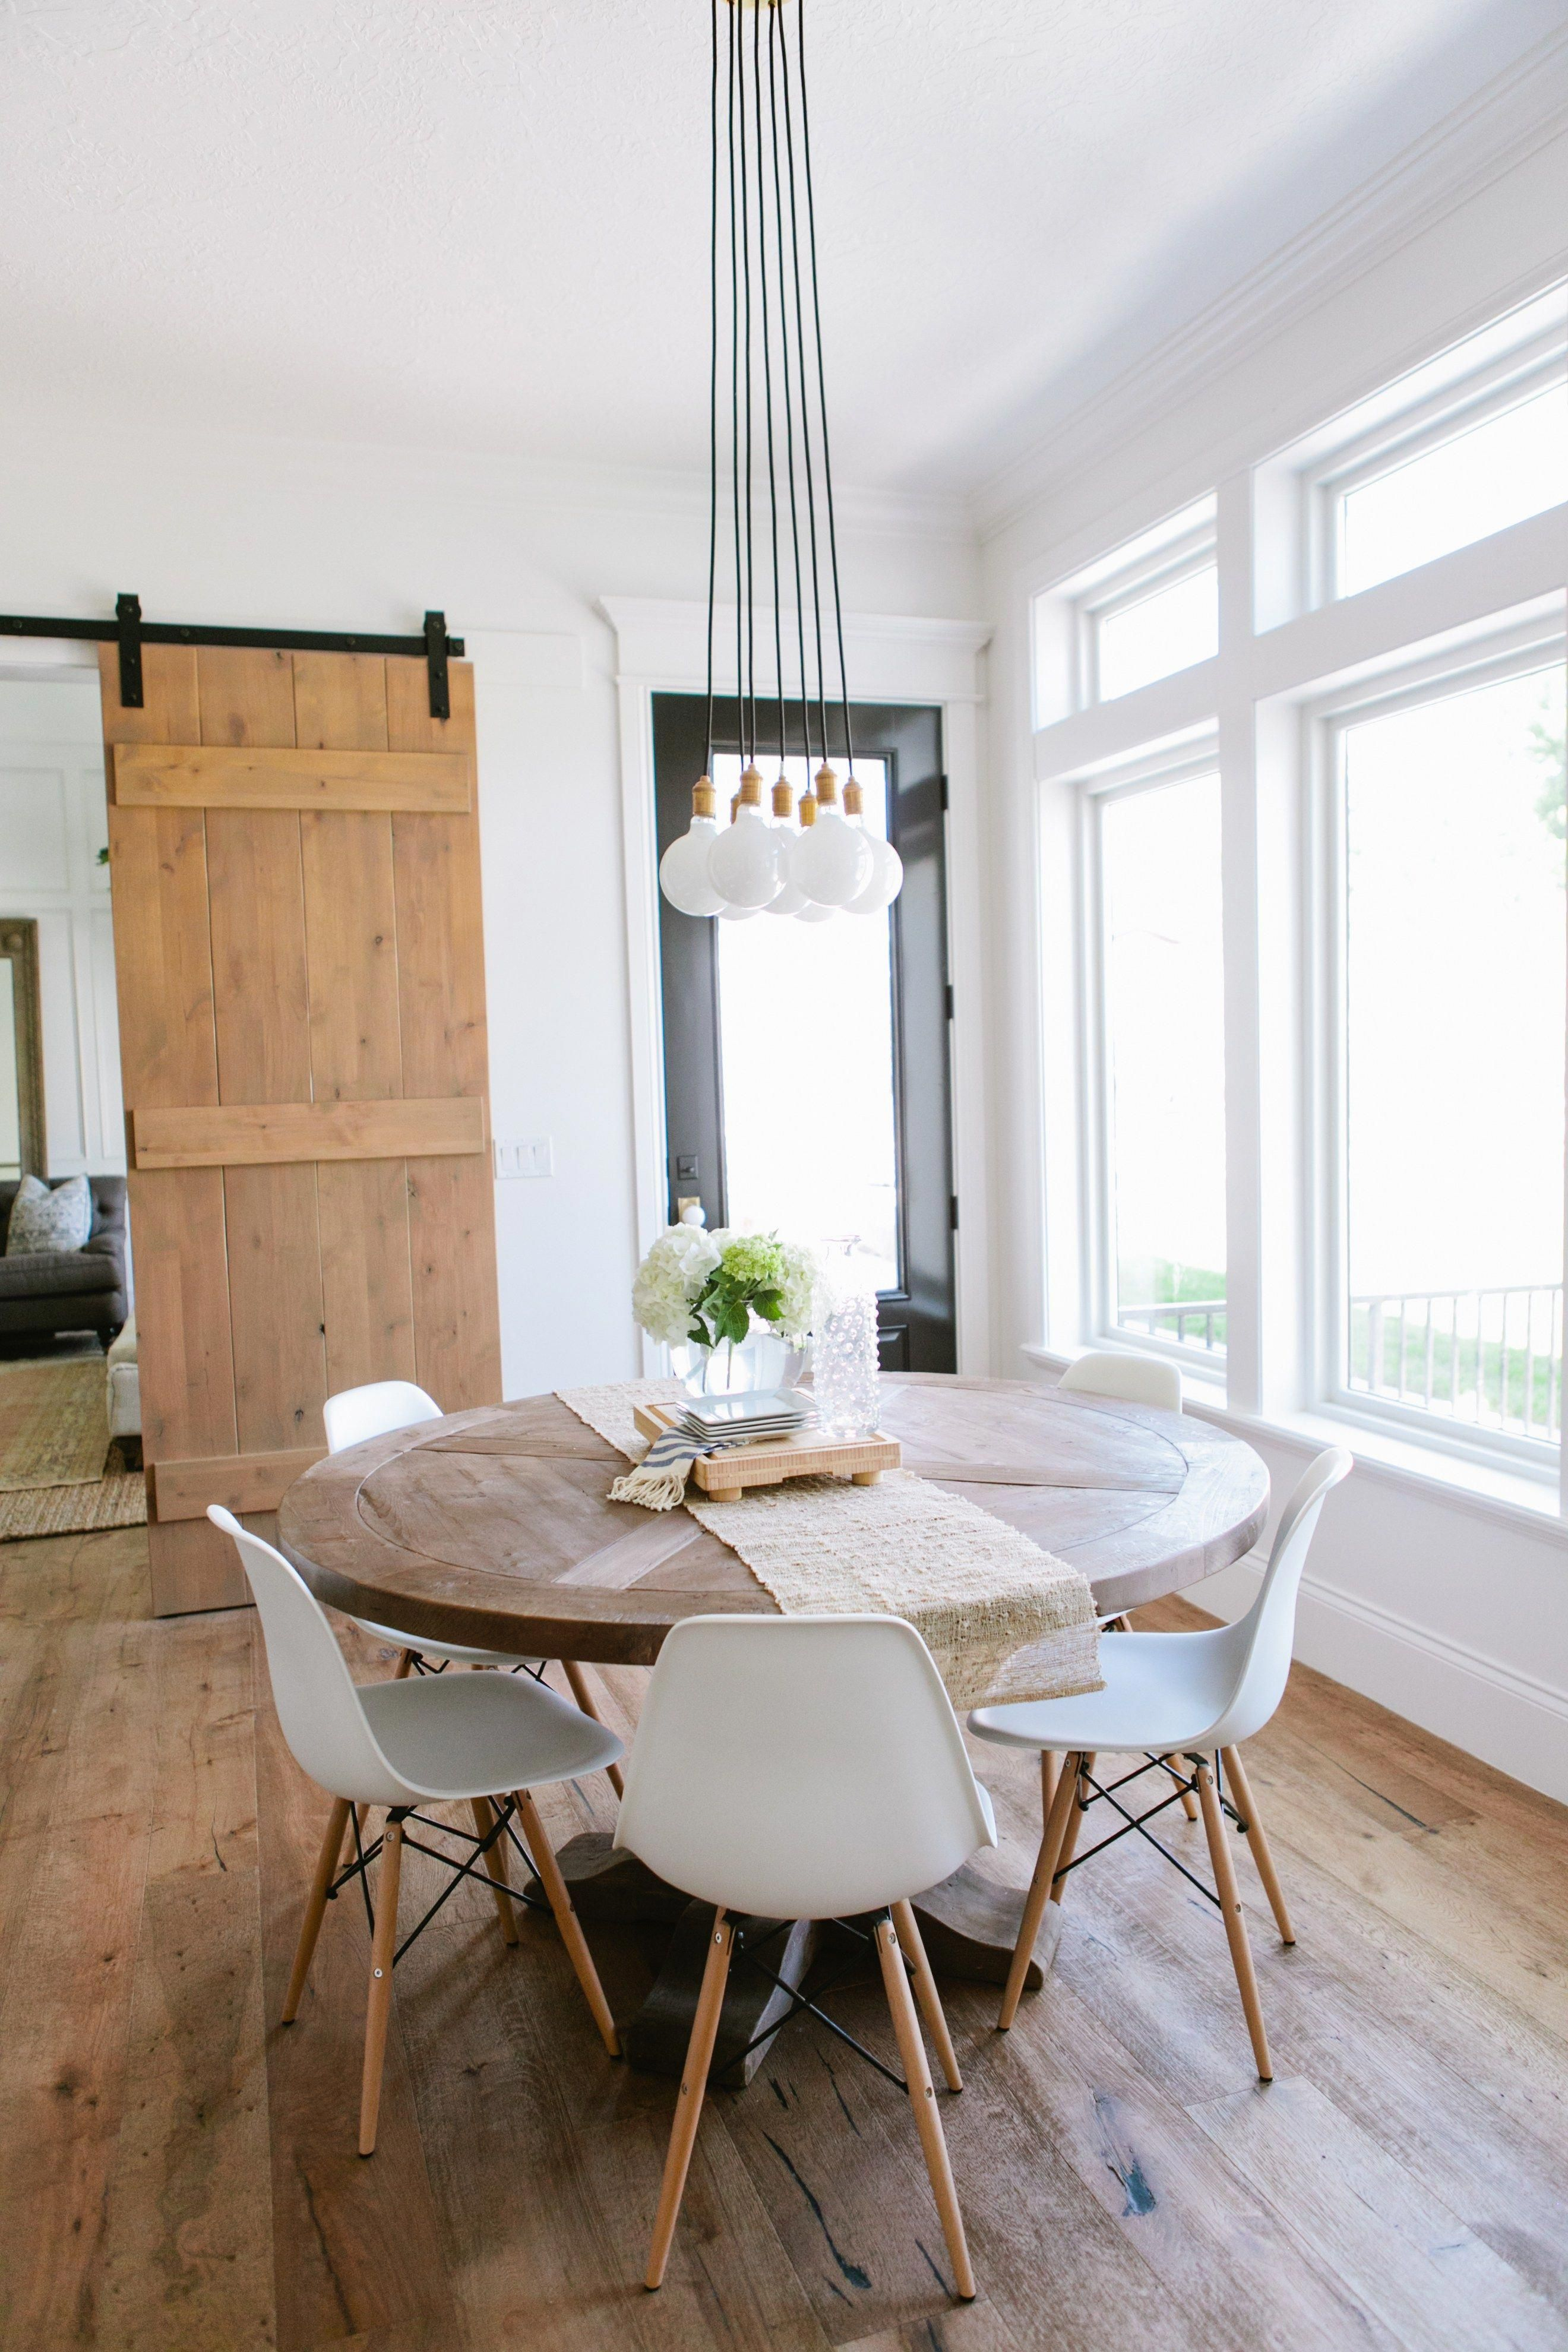 The Modern Farmhouse Project Kitchen Diningroomdecorating